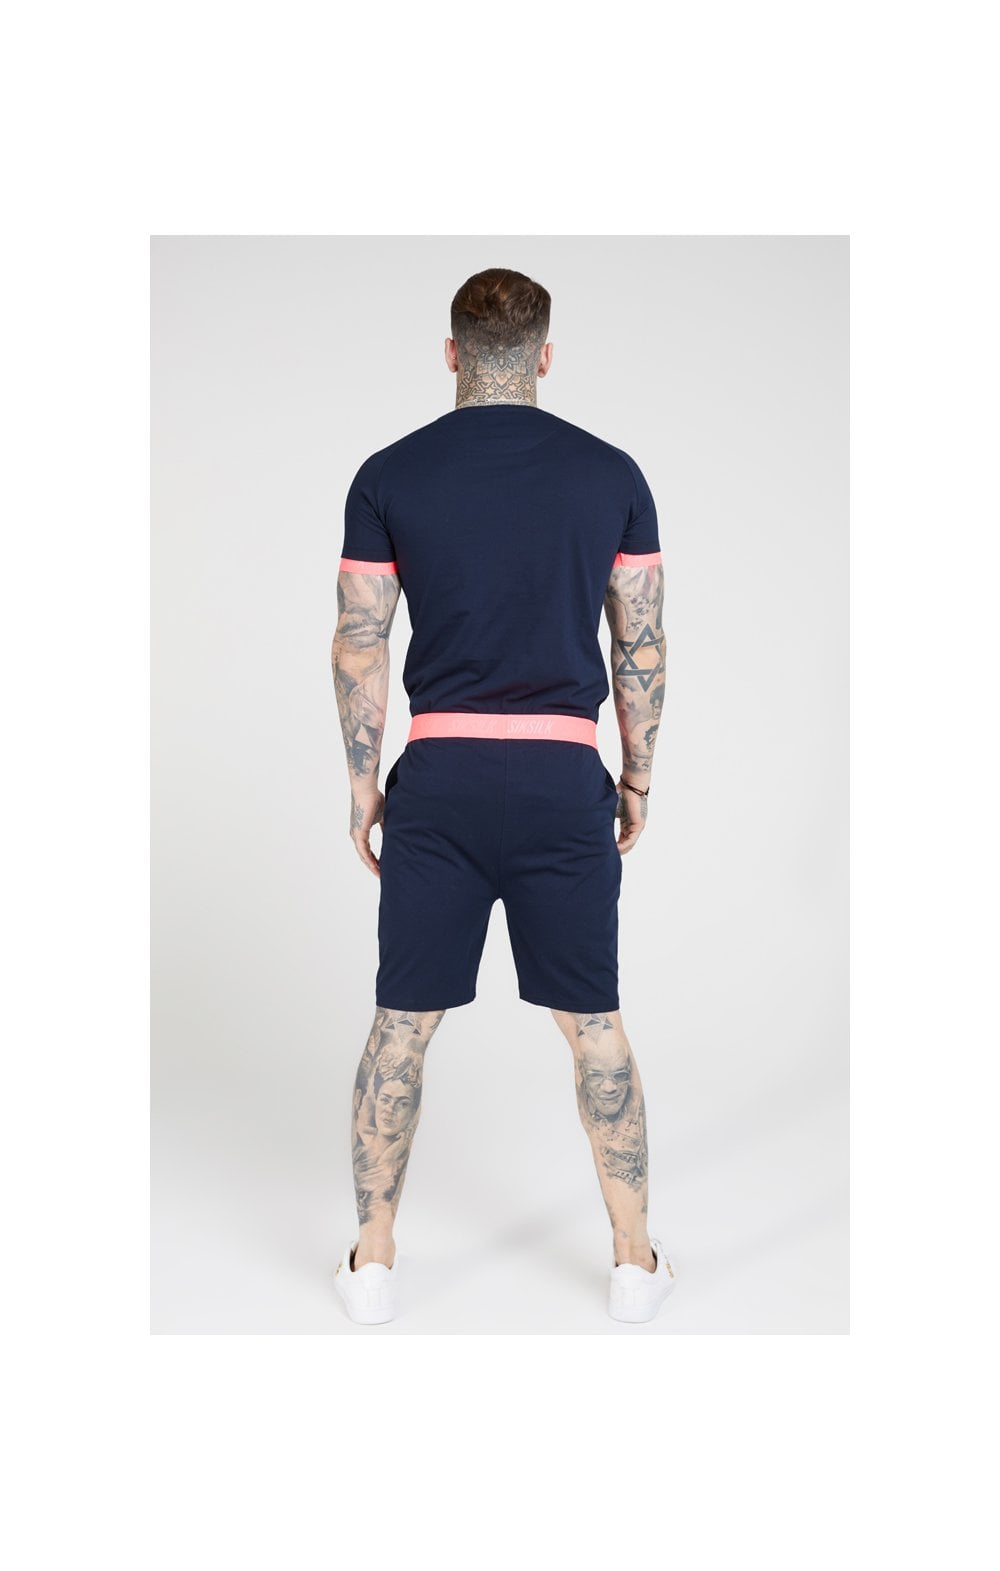 SikSilk Relaxed Fit Shorts –  Navy & Neon Pink (5)